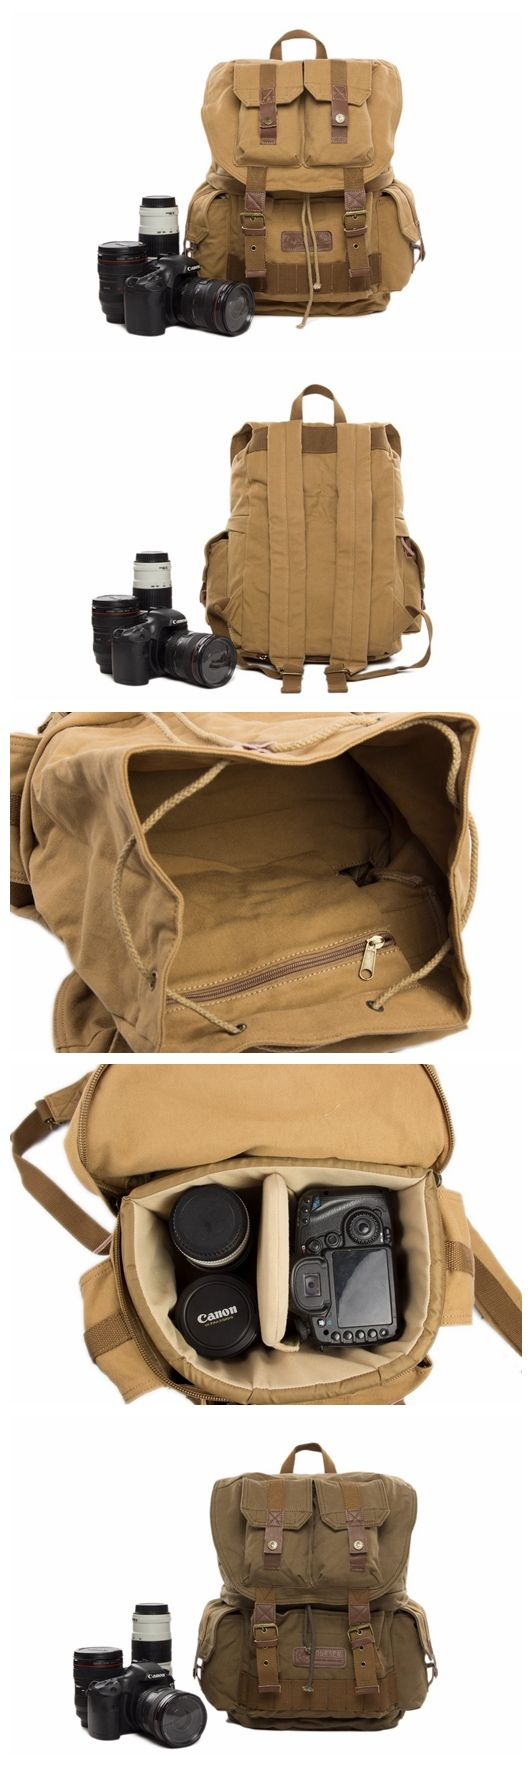 Waxed Canvas DSLR Camera Backpack, Professional Camera Bag, Travel Backpack F2001